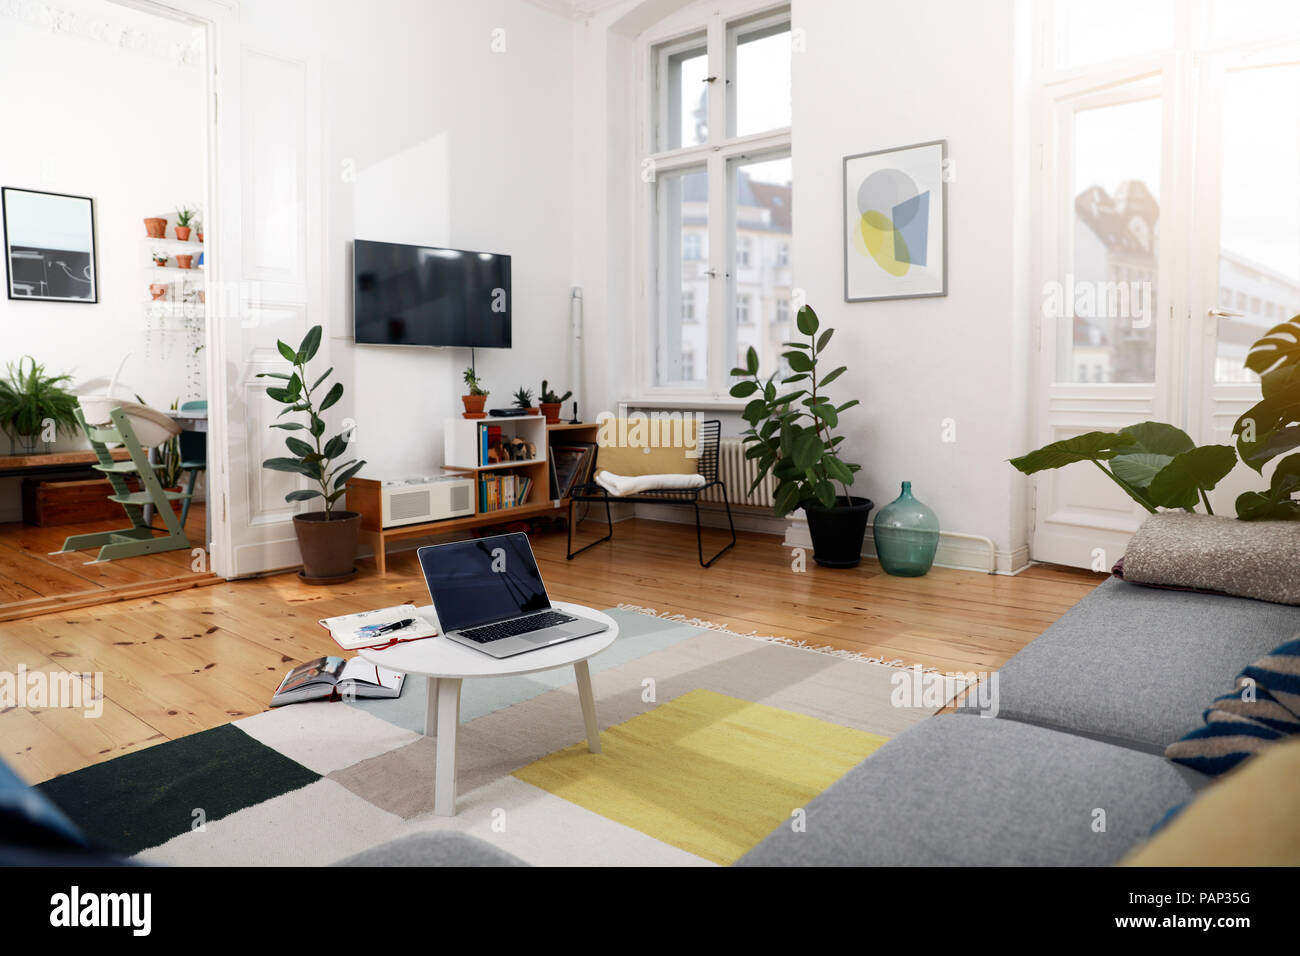 Laptop on a coffee table in a modernly furnished flat - Stock Image